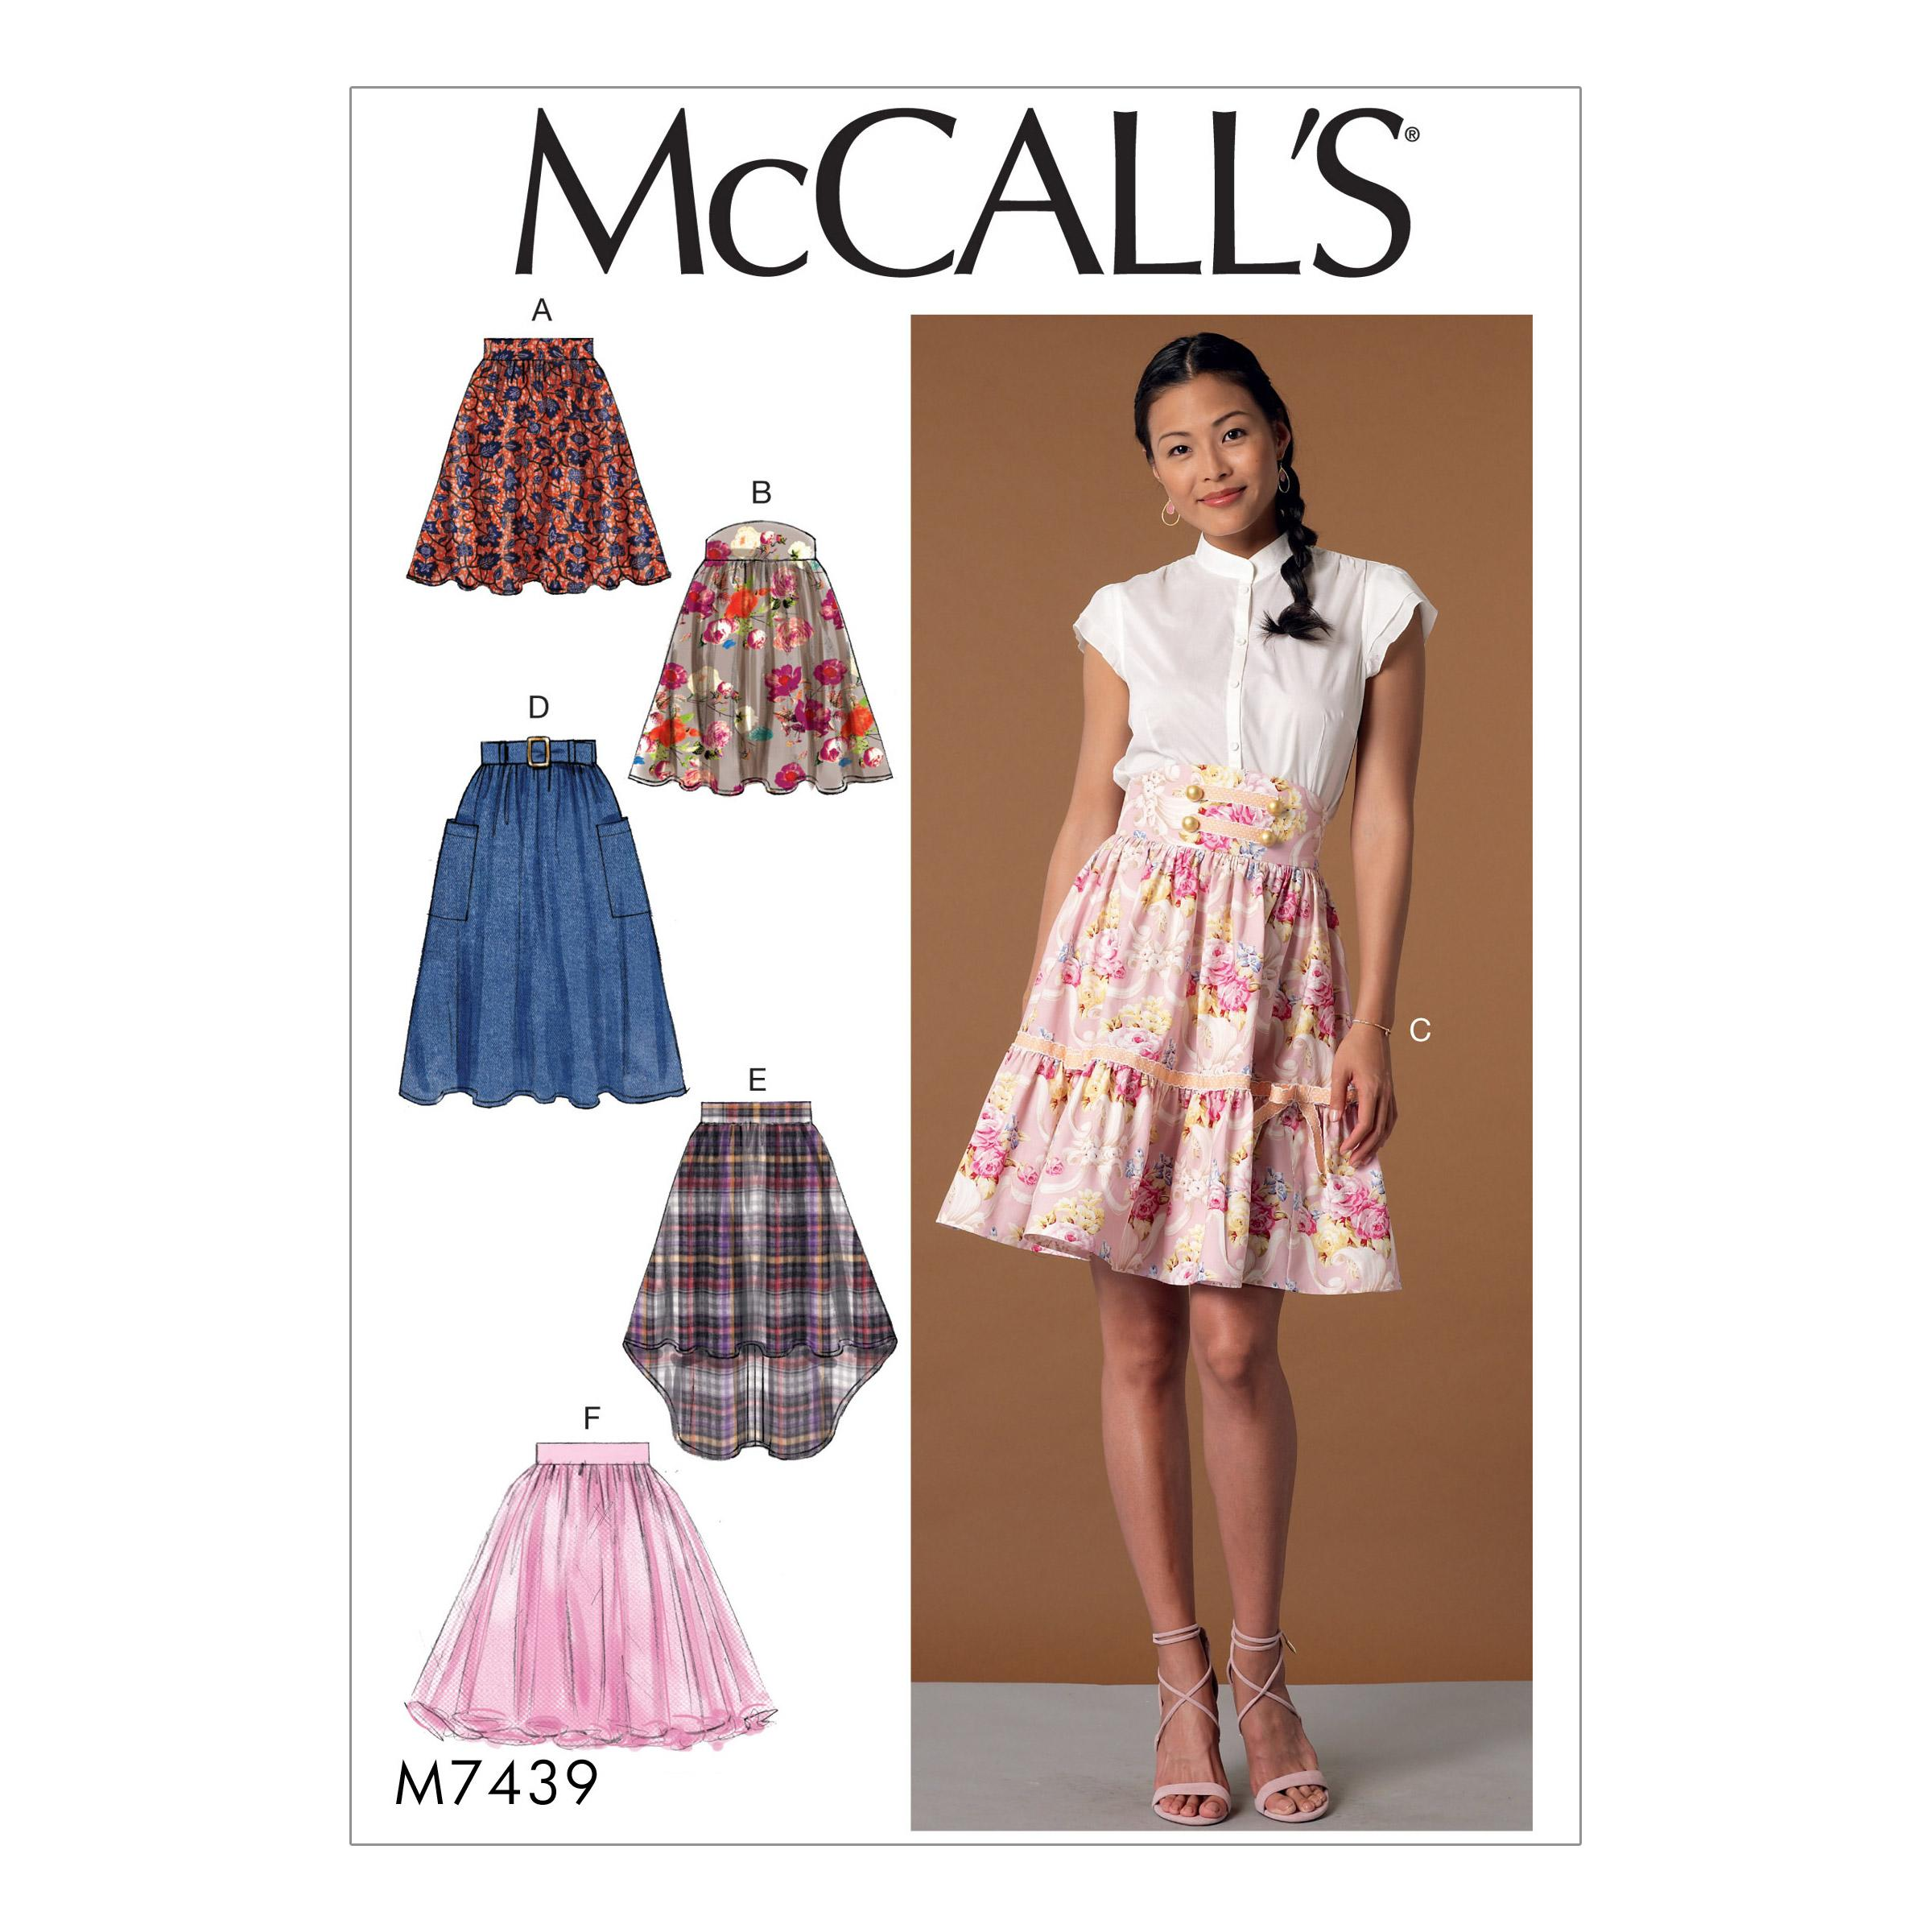 McCalls M7439 Misses Skirts